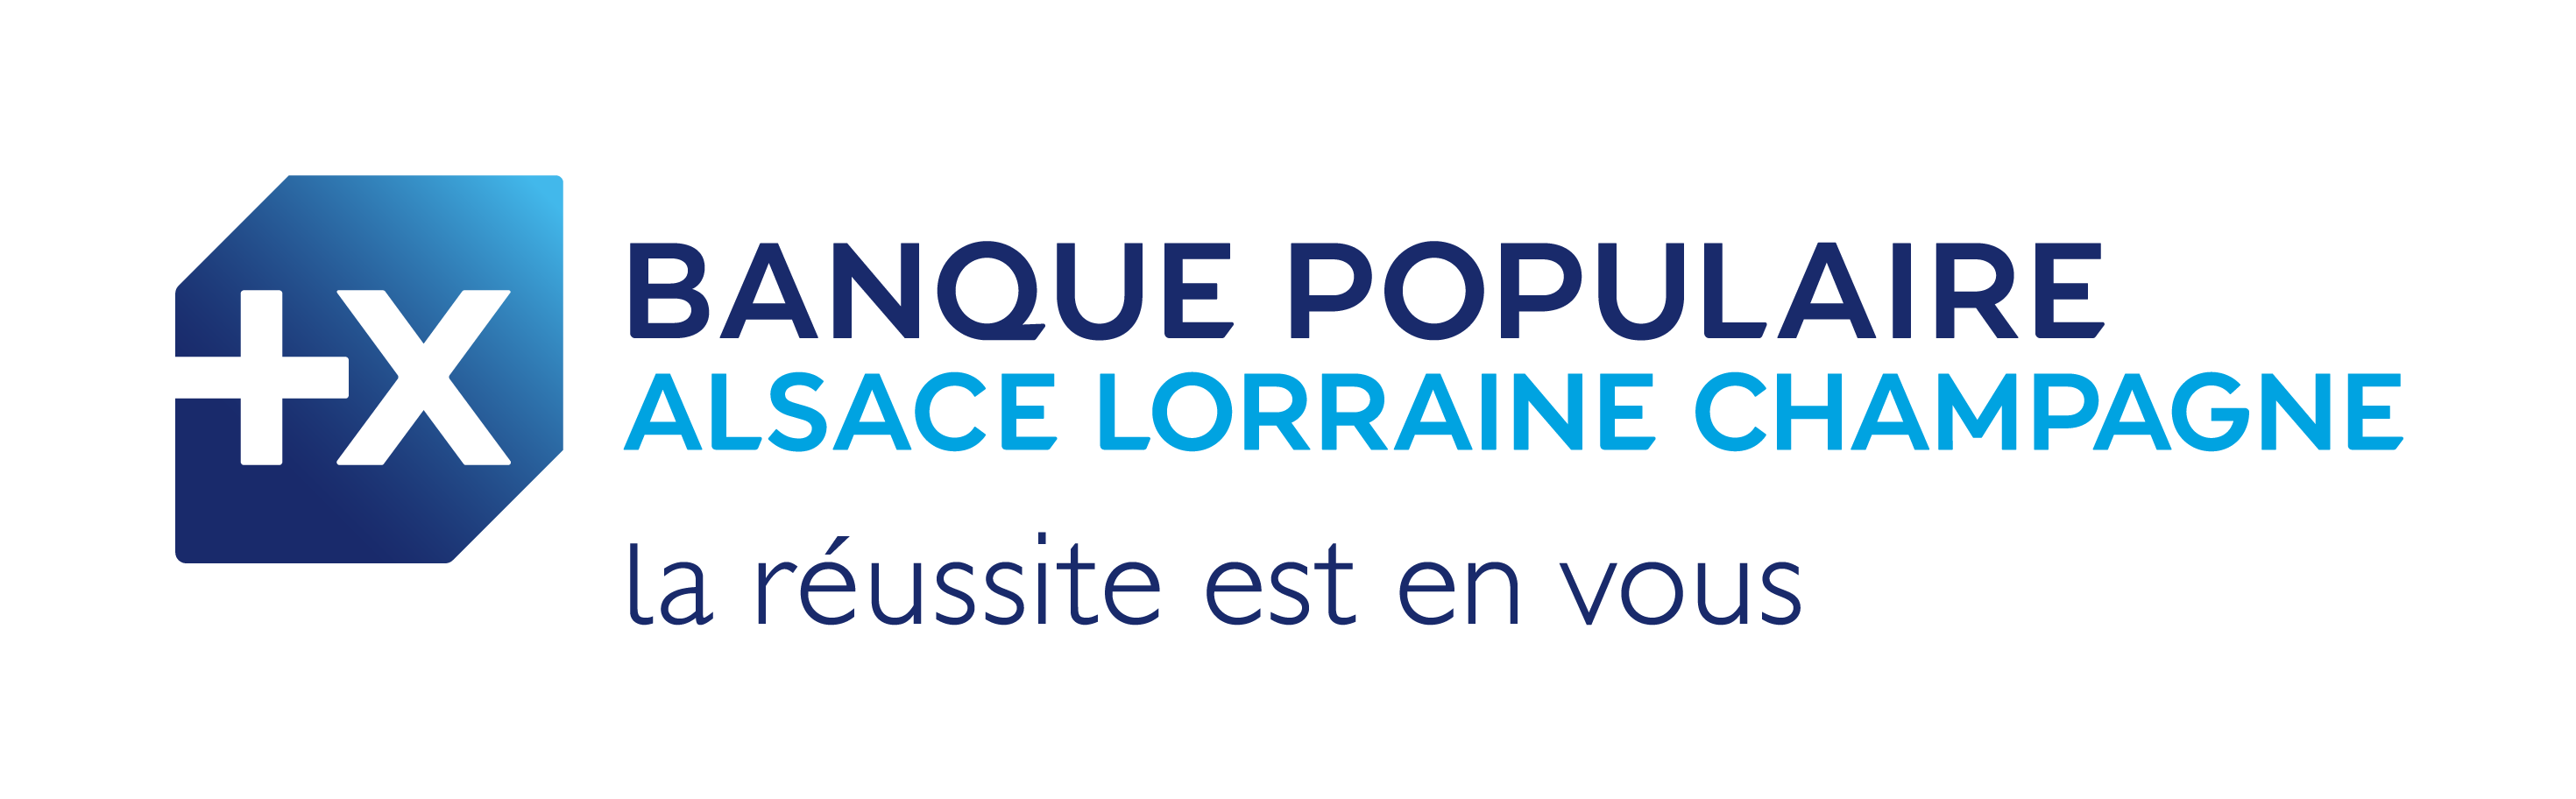 Banque Populaire Alsace-Lorraine-Champagne-Ardenne